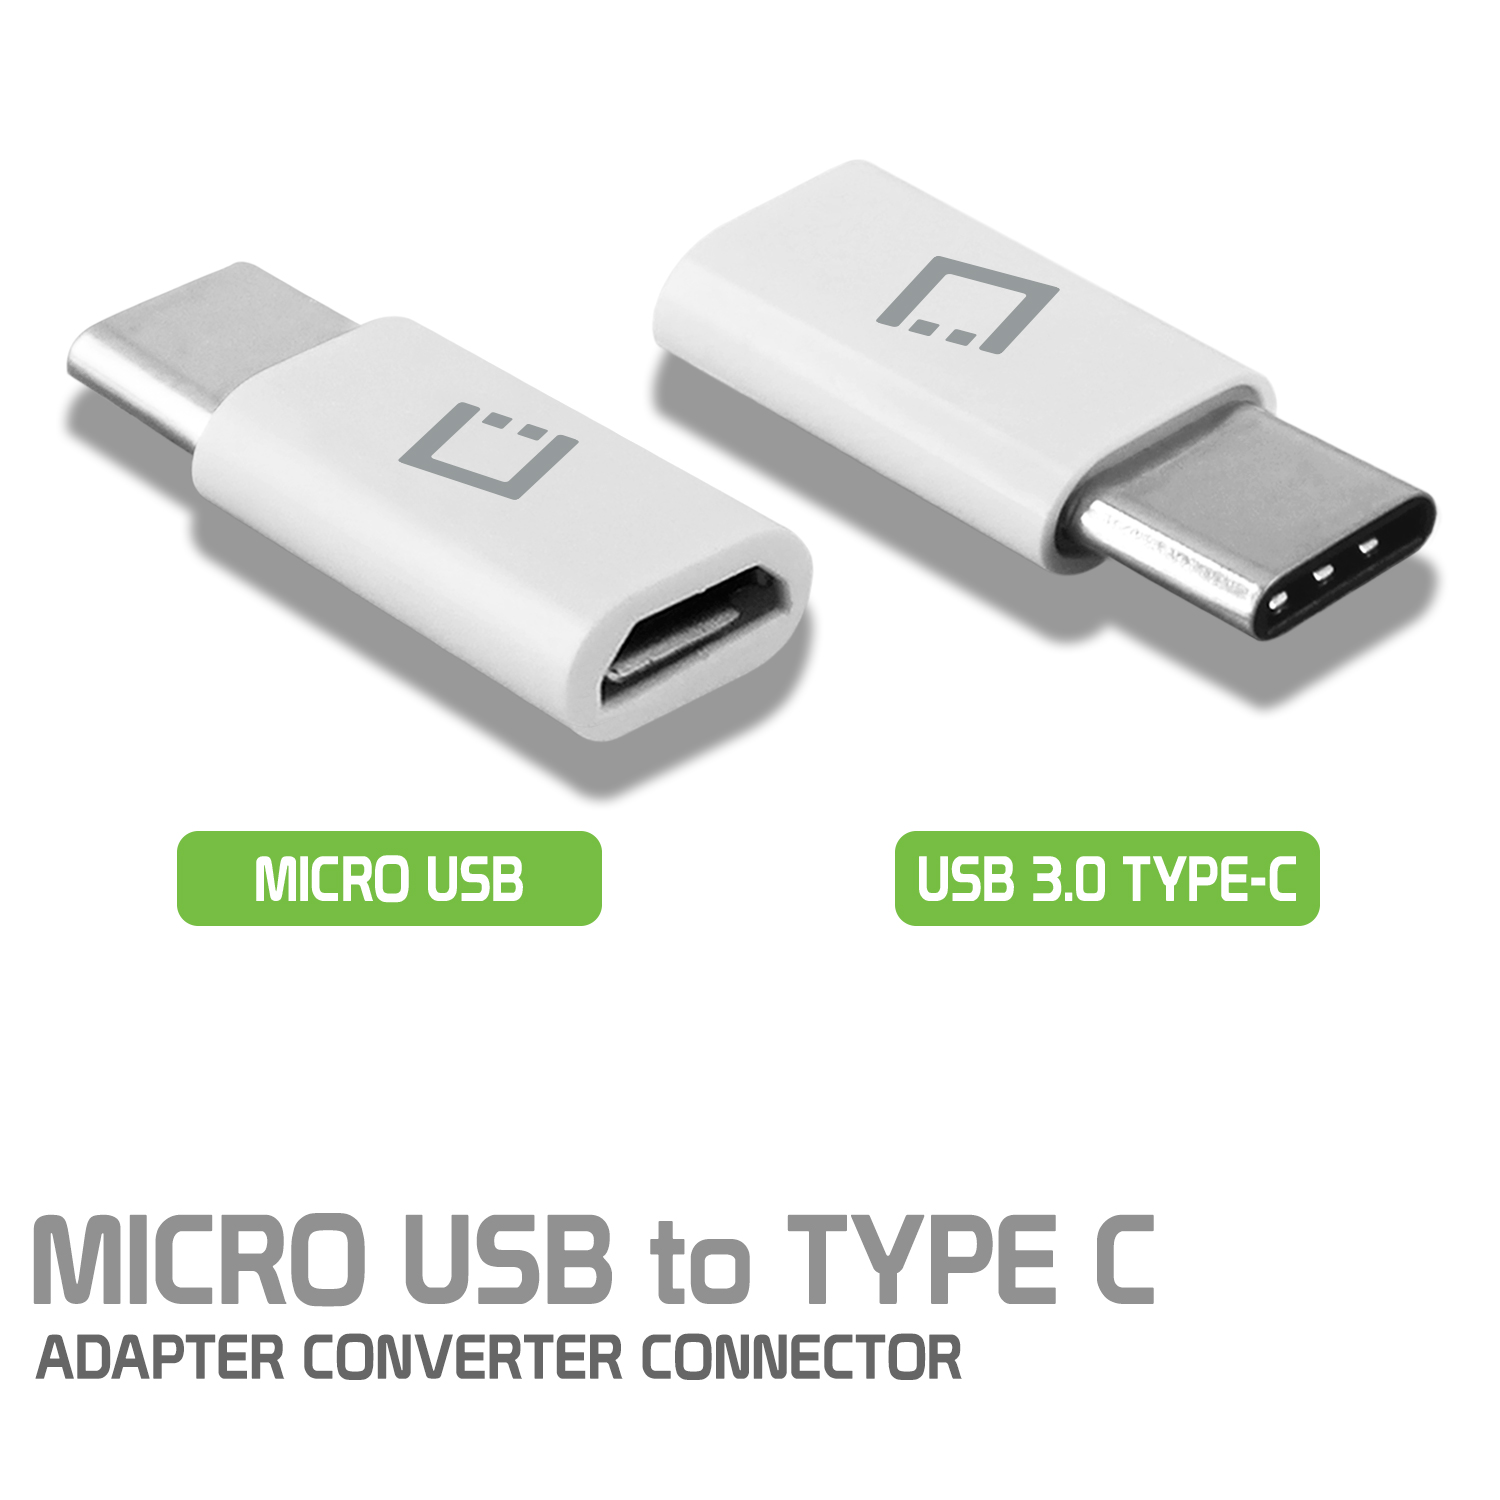 LG Stylo 4 Micro USB to USB Type C Adapter Converter White